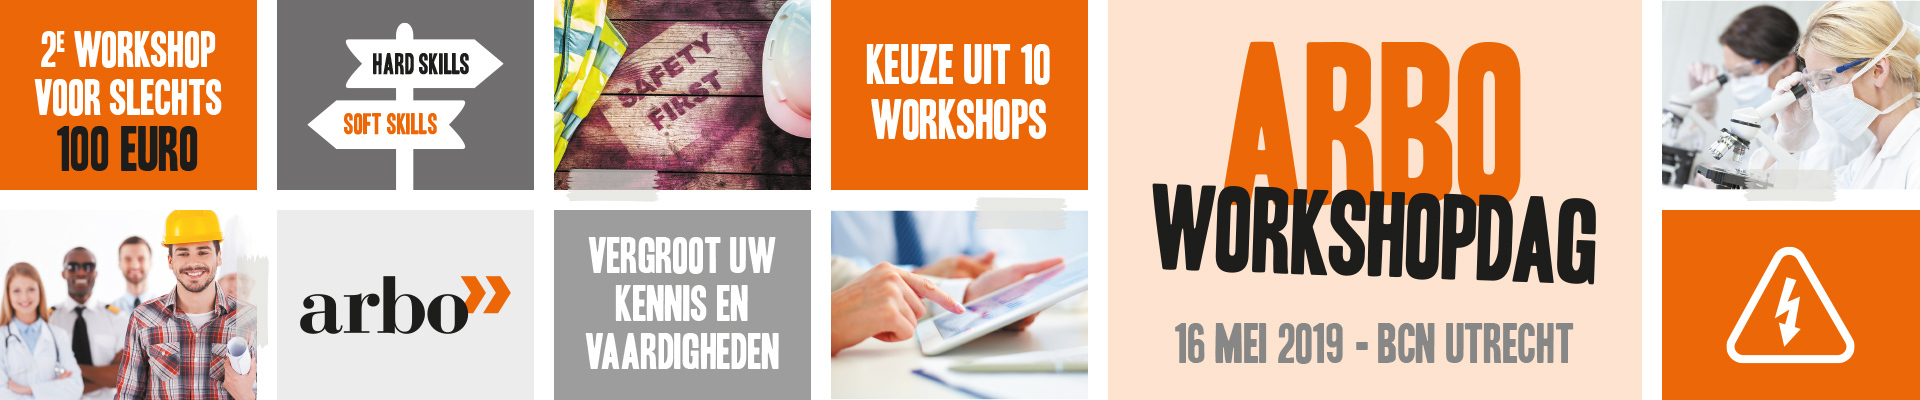 Arbo Workshopdag 2019